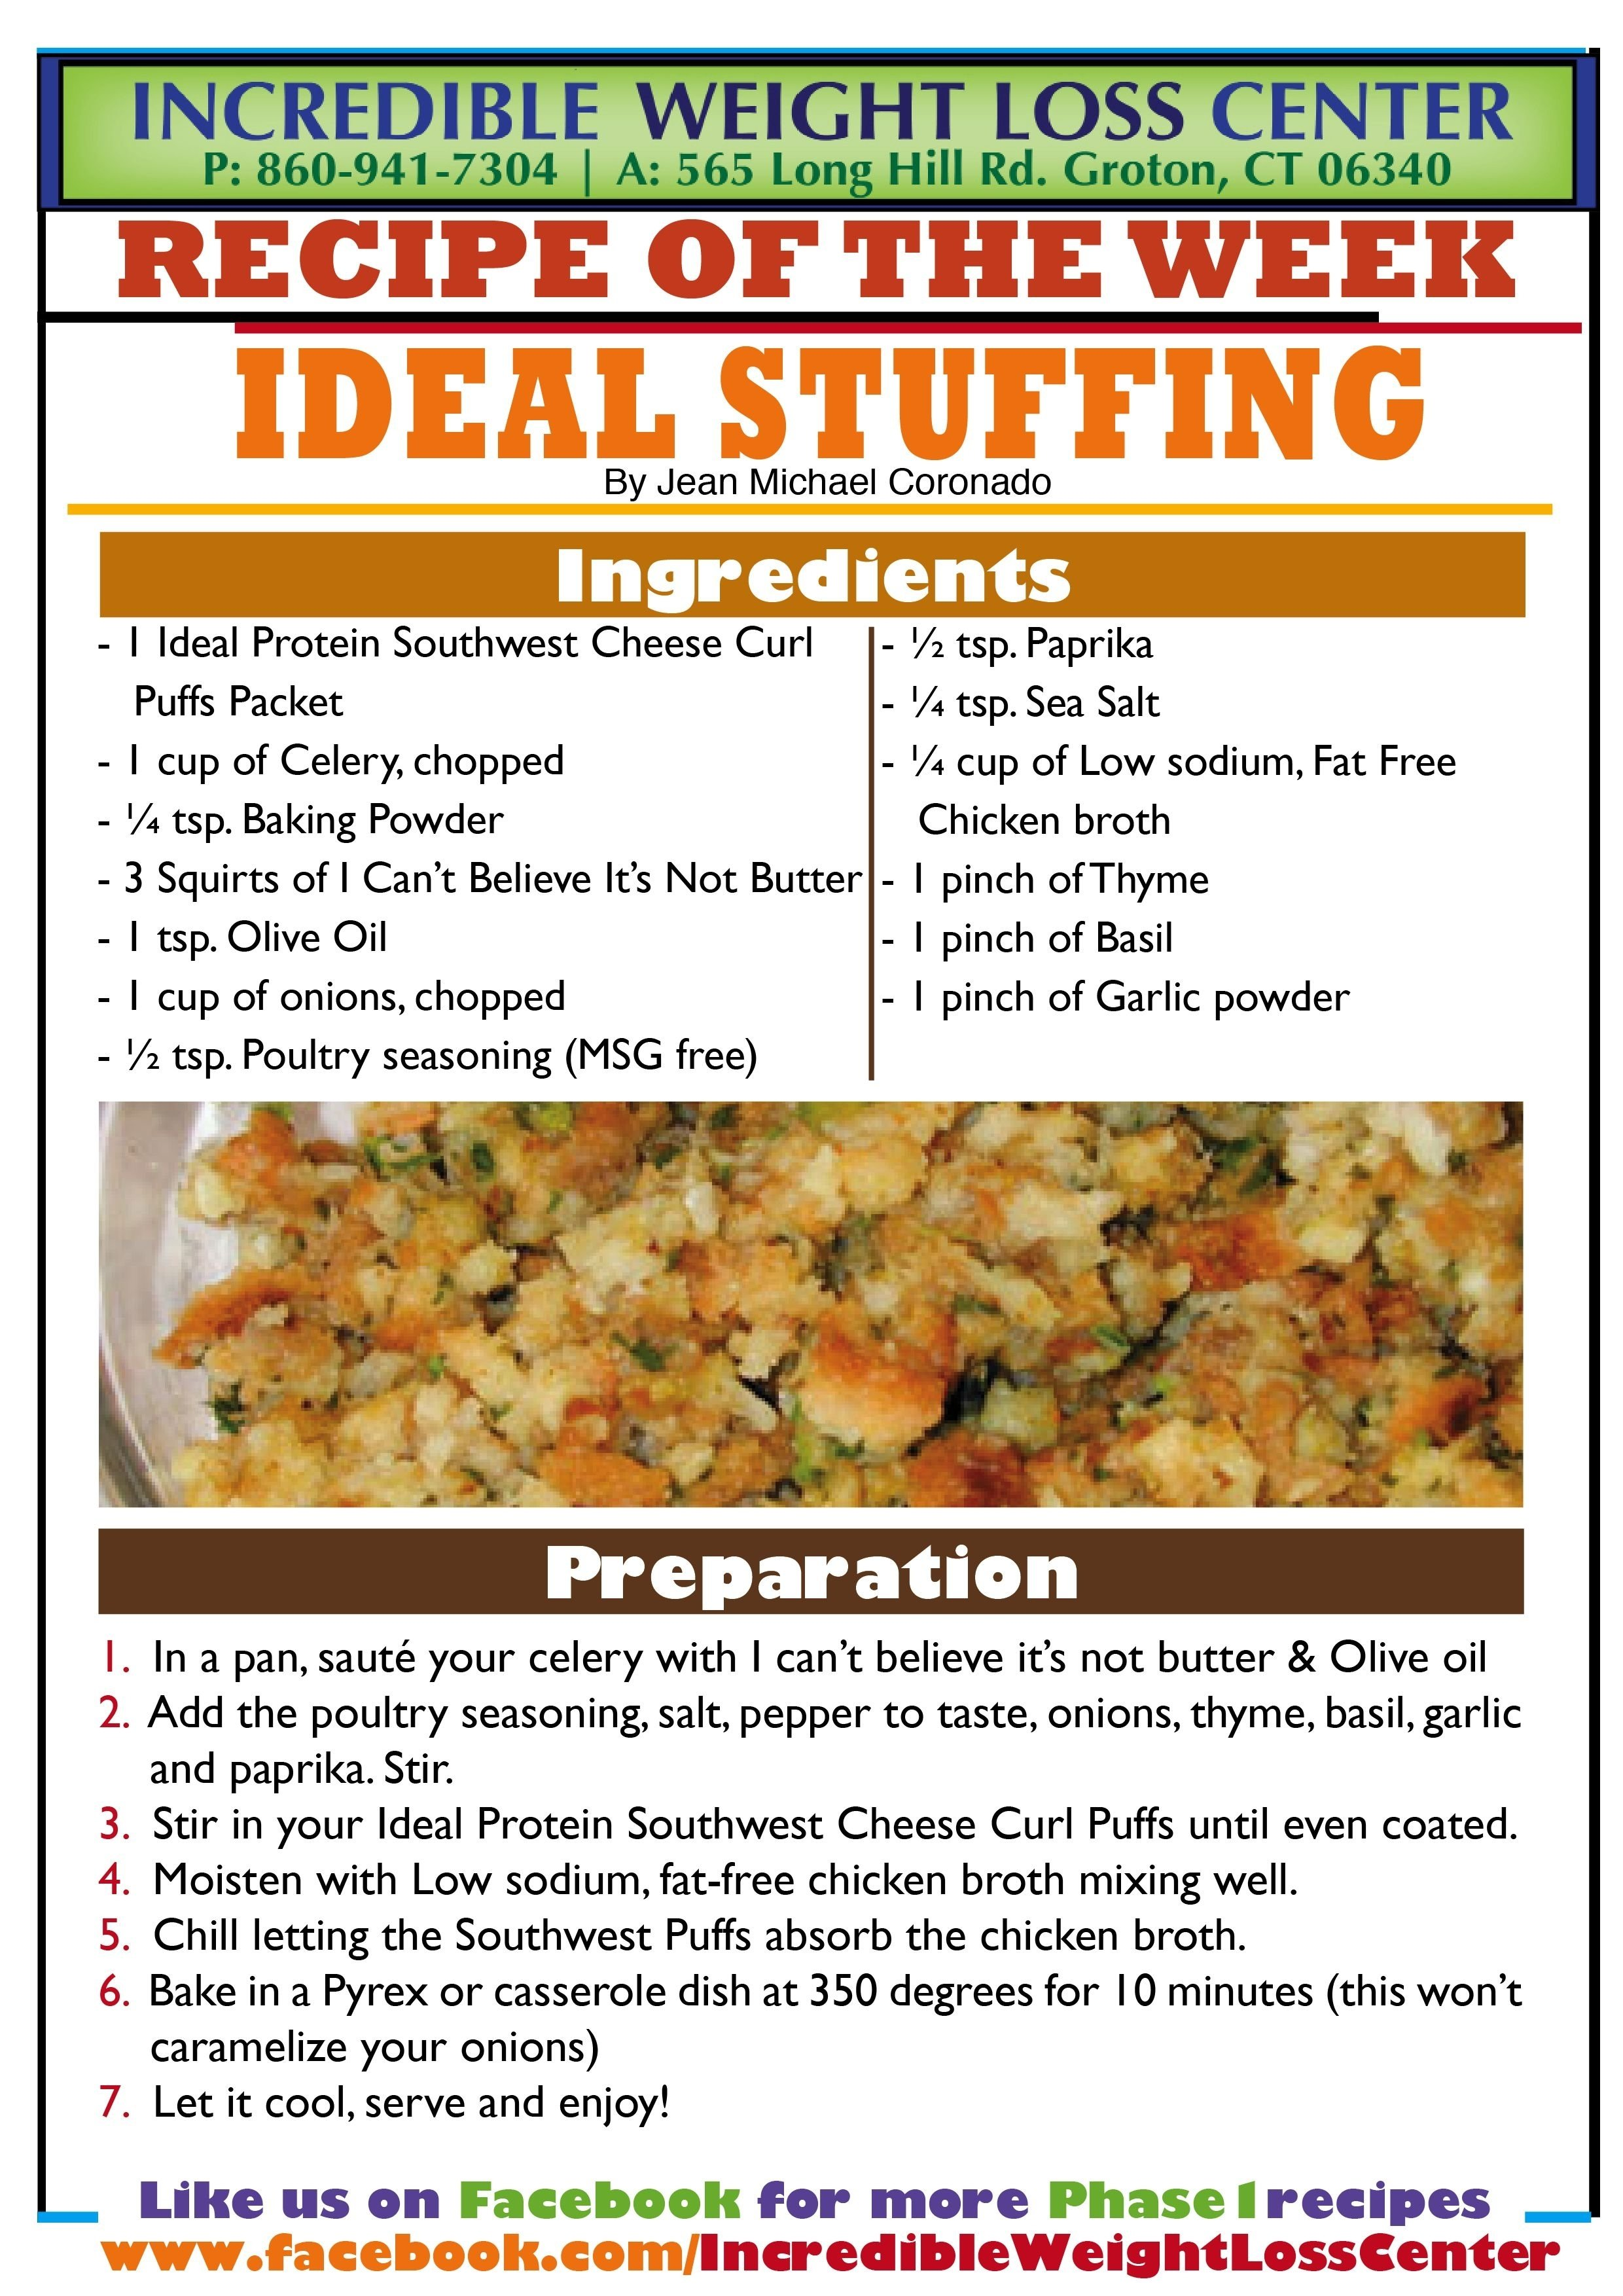 10 Wonderful Ideal Protein Phase 3 Breakfast Ideas ideal protein phase 1 stuffing with southwest cheese curl puffs 2021